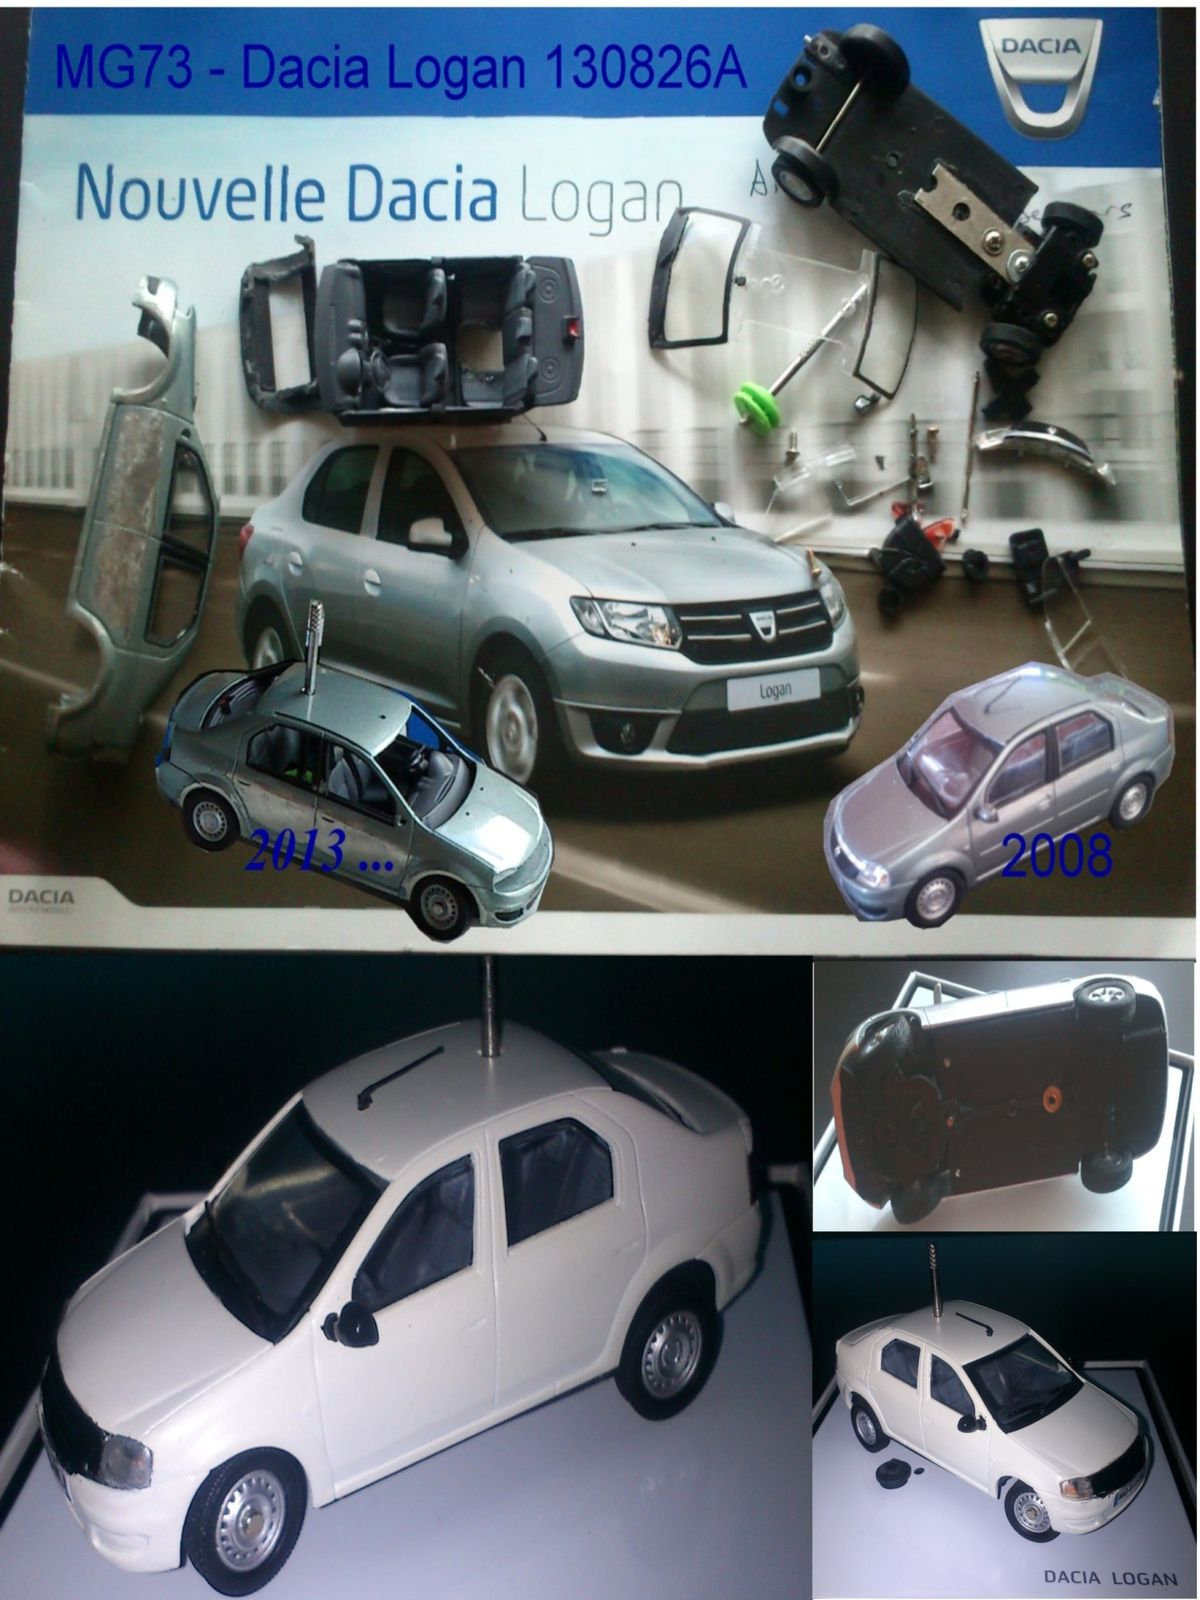 nouvelle dacia logan le blog de mg73 tuning. Black Bedroom Furniture Sets. Home Design Ideas